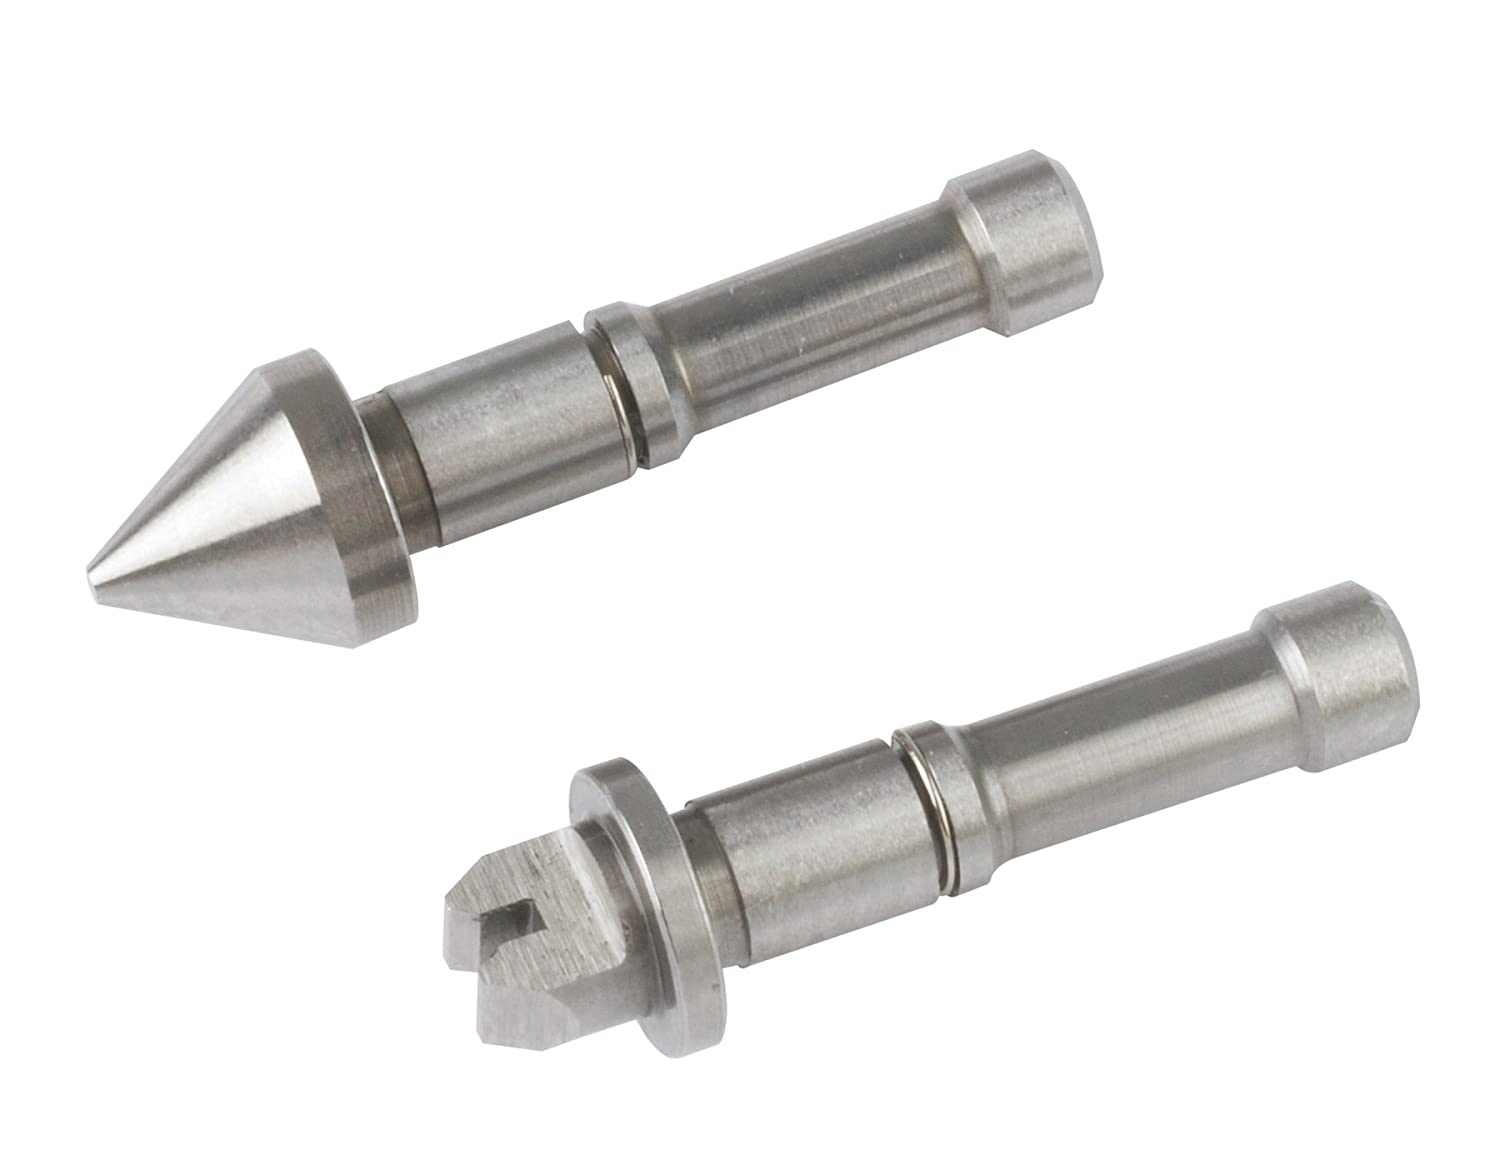 Mitutoyo 126-804, Anvil/Spindle Screw Thread Micrometer Tip Set, 60 Deg. Threads, 9-13 TPI/2-3mm